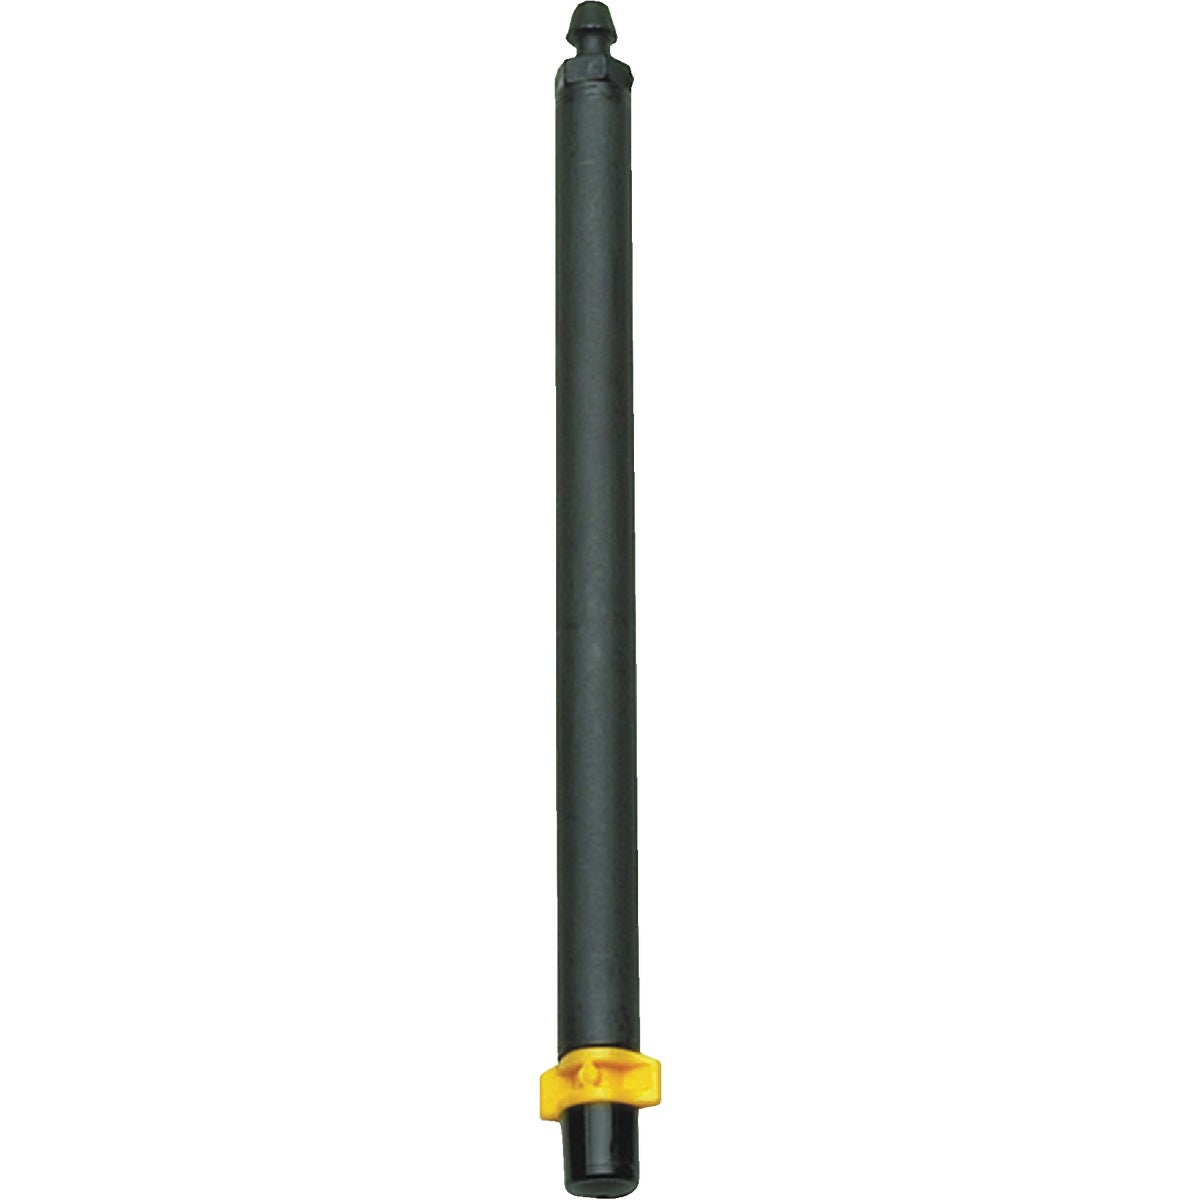 "MISTER 4"" RISER ASSEMBLY - 165005B by Raindrip Inc"